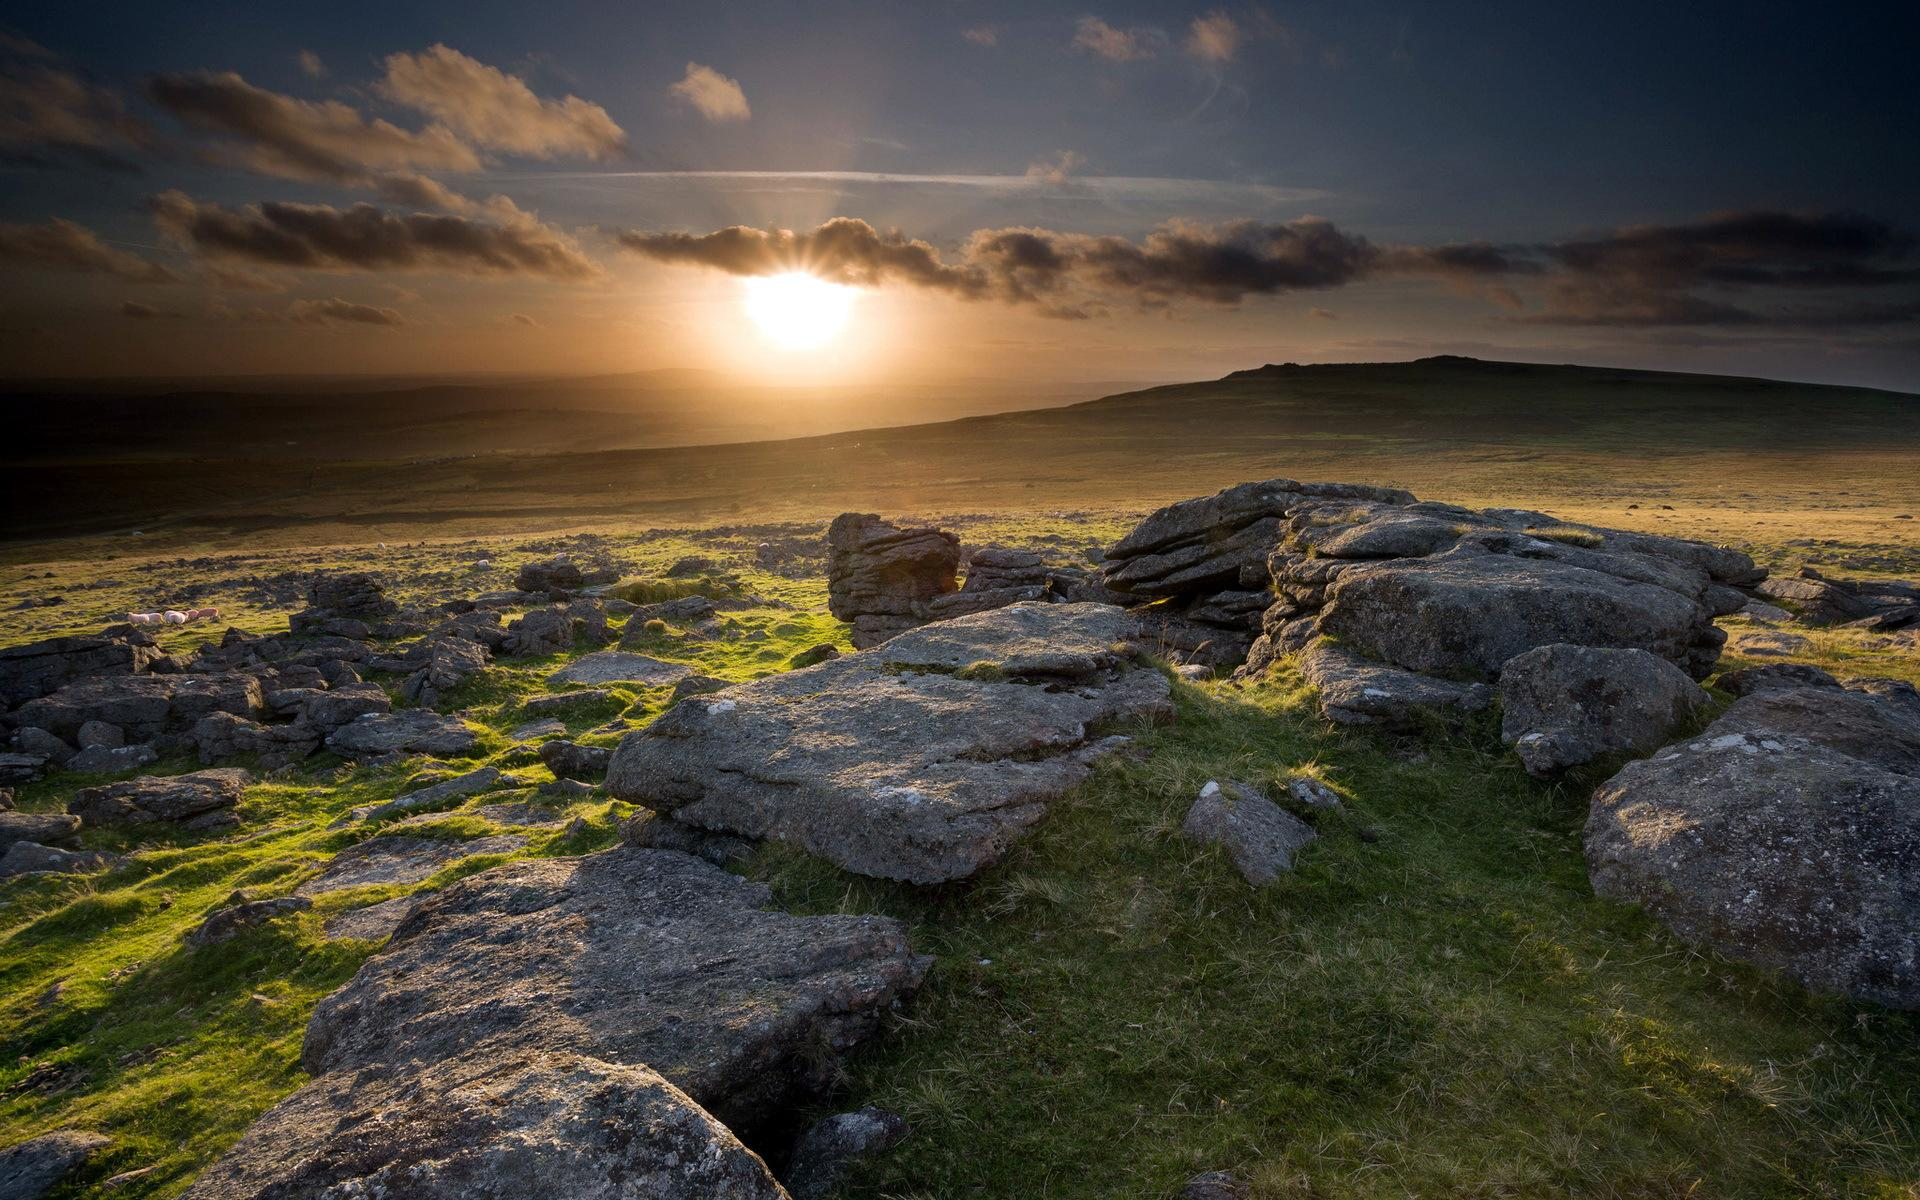 Buy a canon lens or printer and win a week in scotland cameraworld news - Highland park wallpaper ...